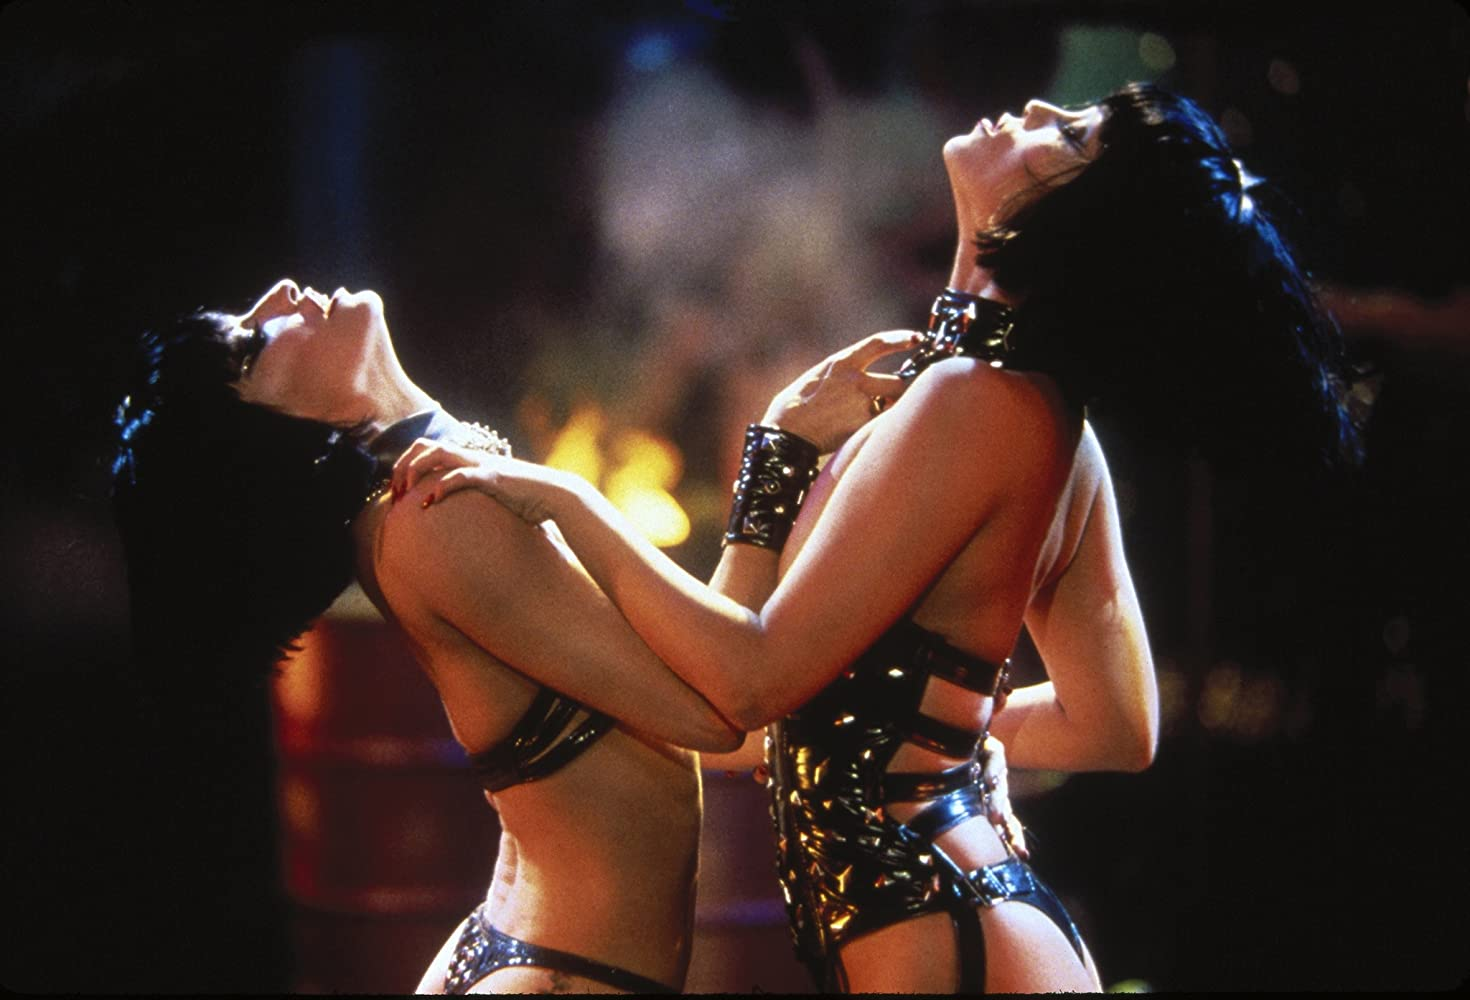 Nomi and Cristal dance in leather.